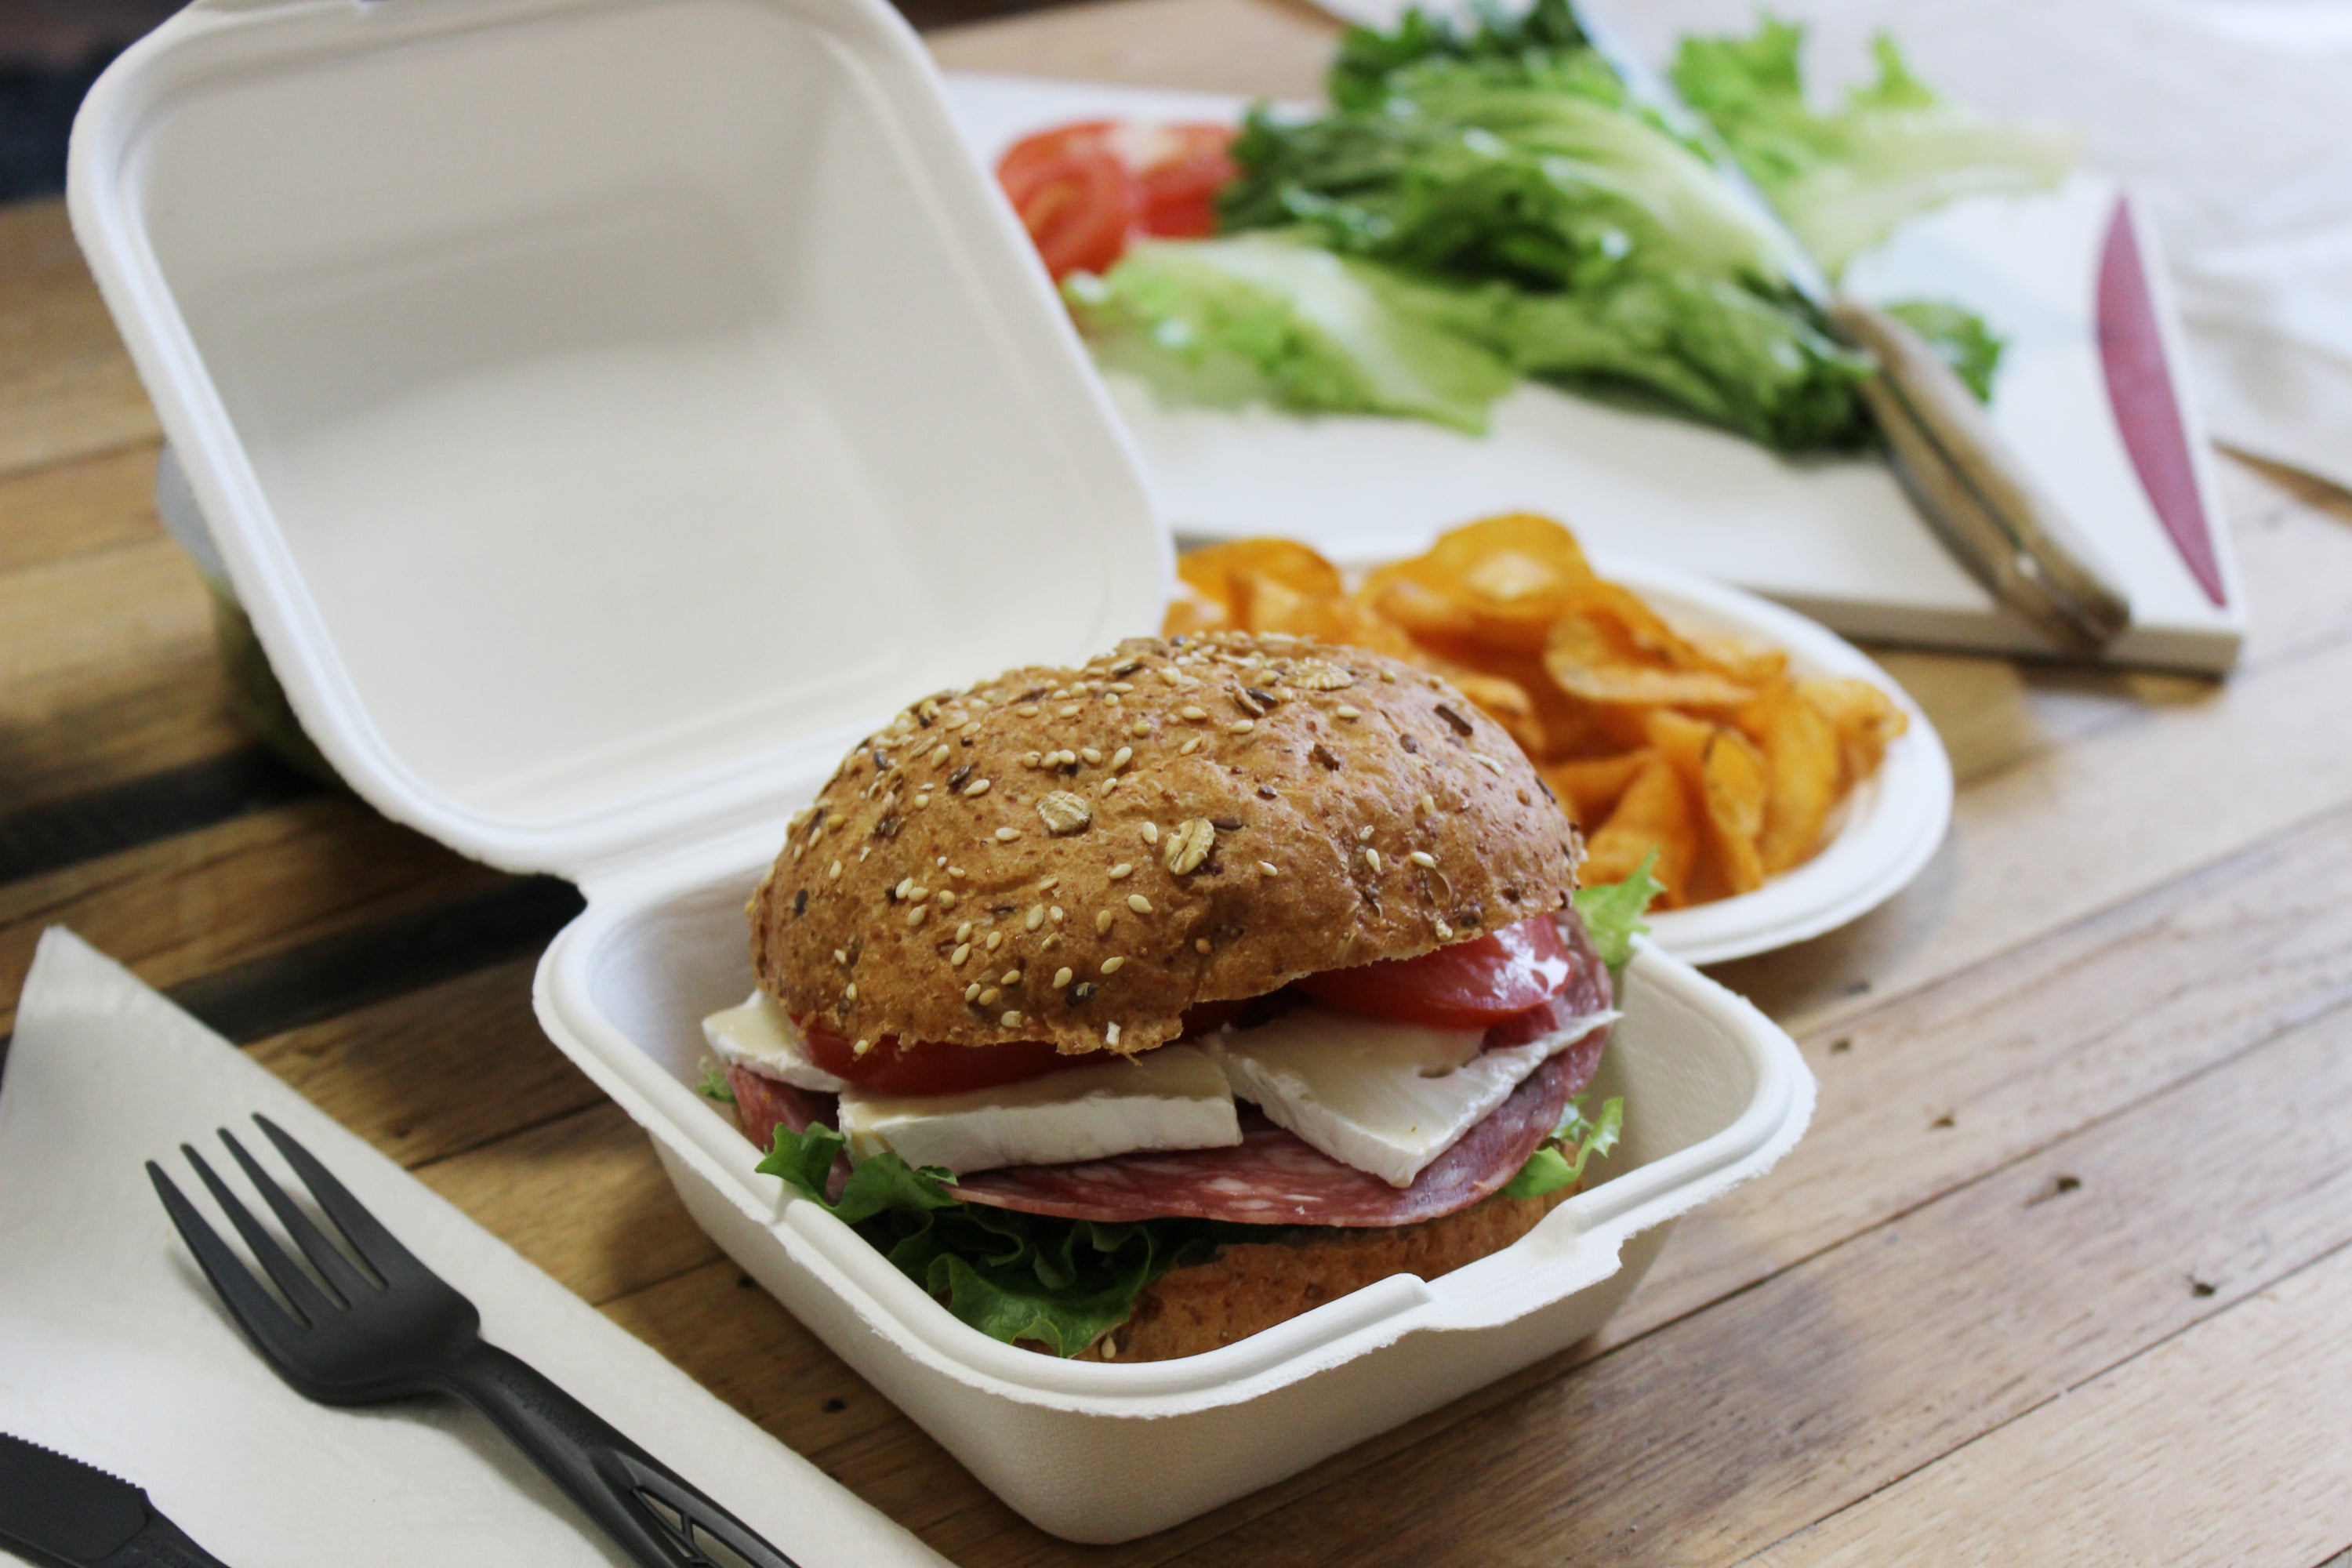 biodegradable clamshell take-out box with burger